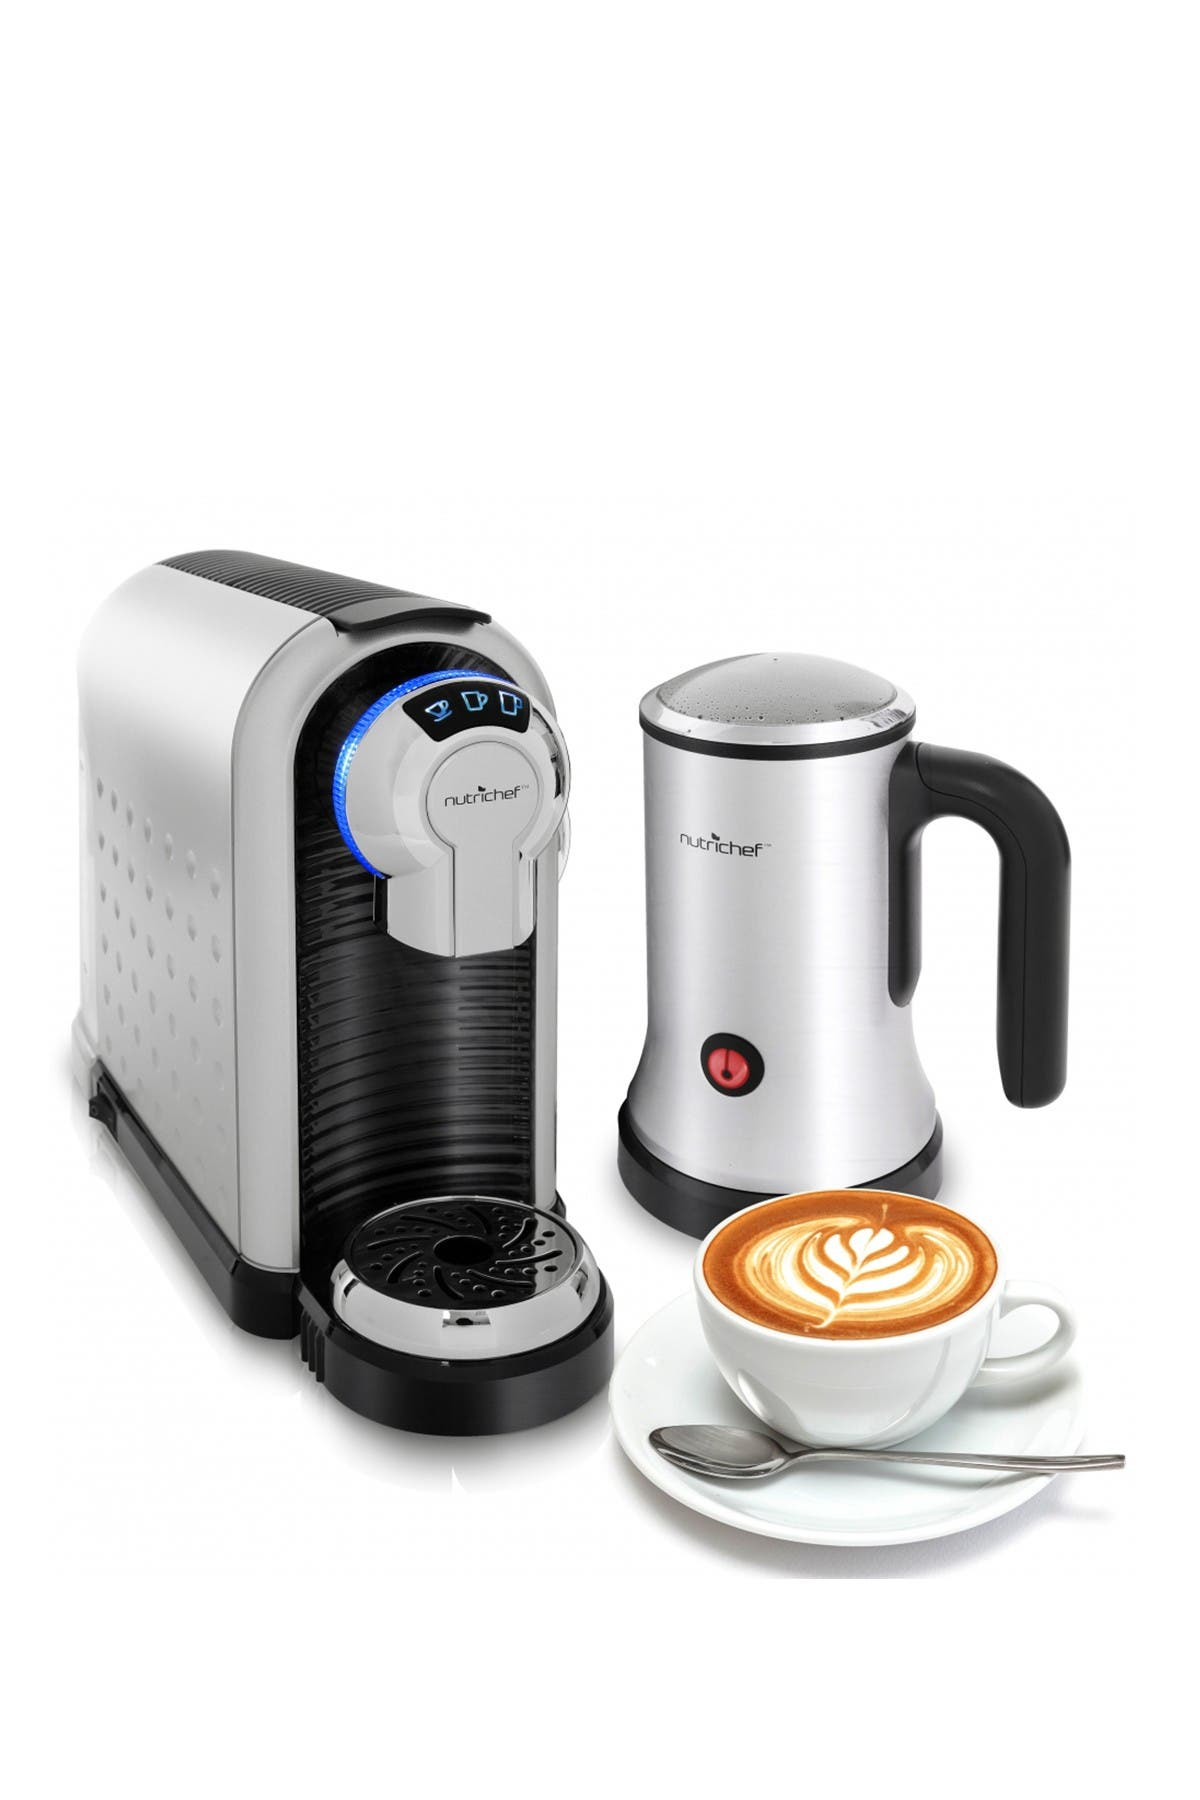 Image of NutriChef Automatic Capsule Espresso Maker with Hot & Cold Milk Frother